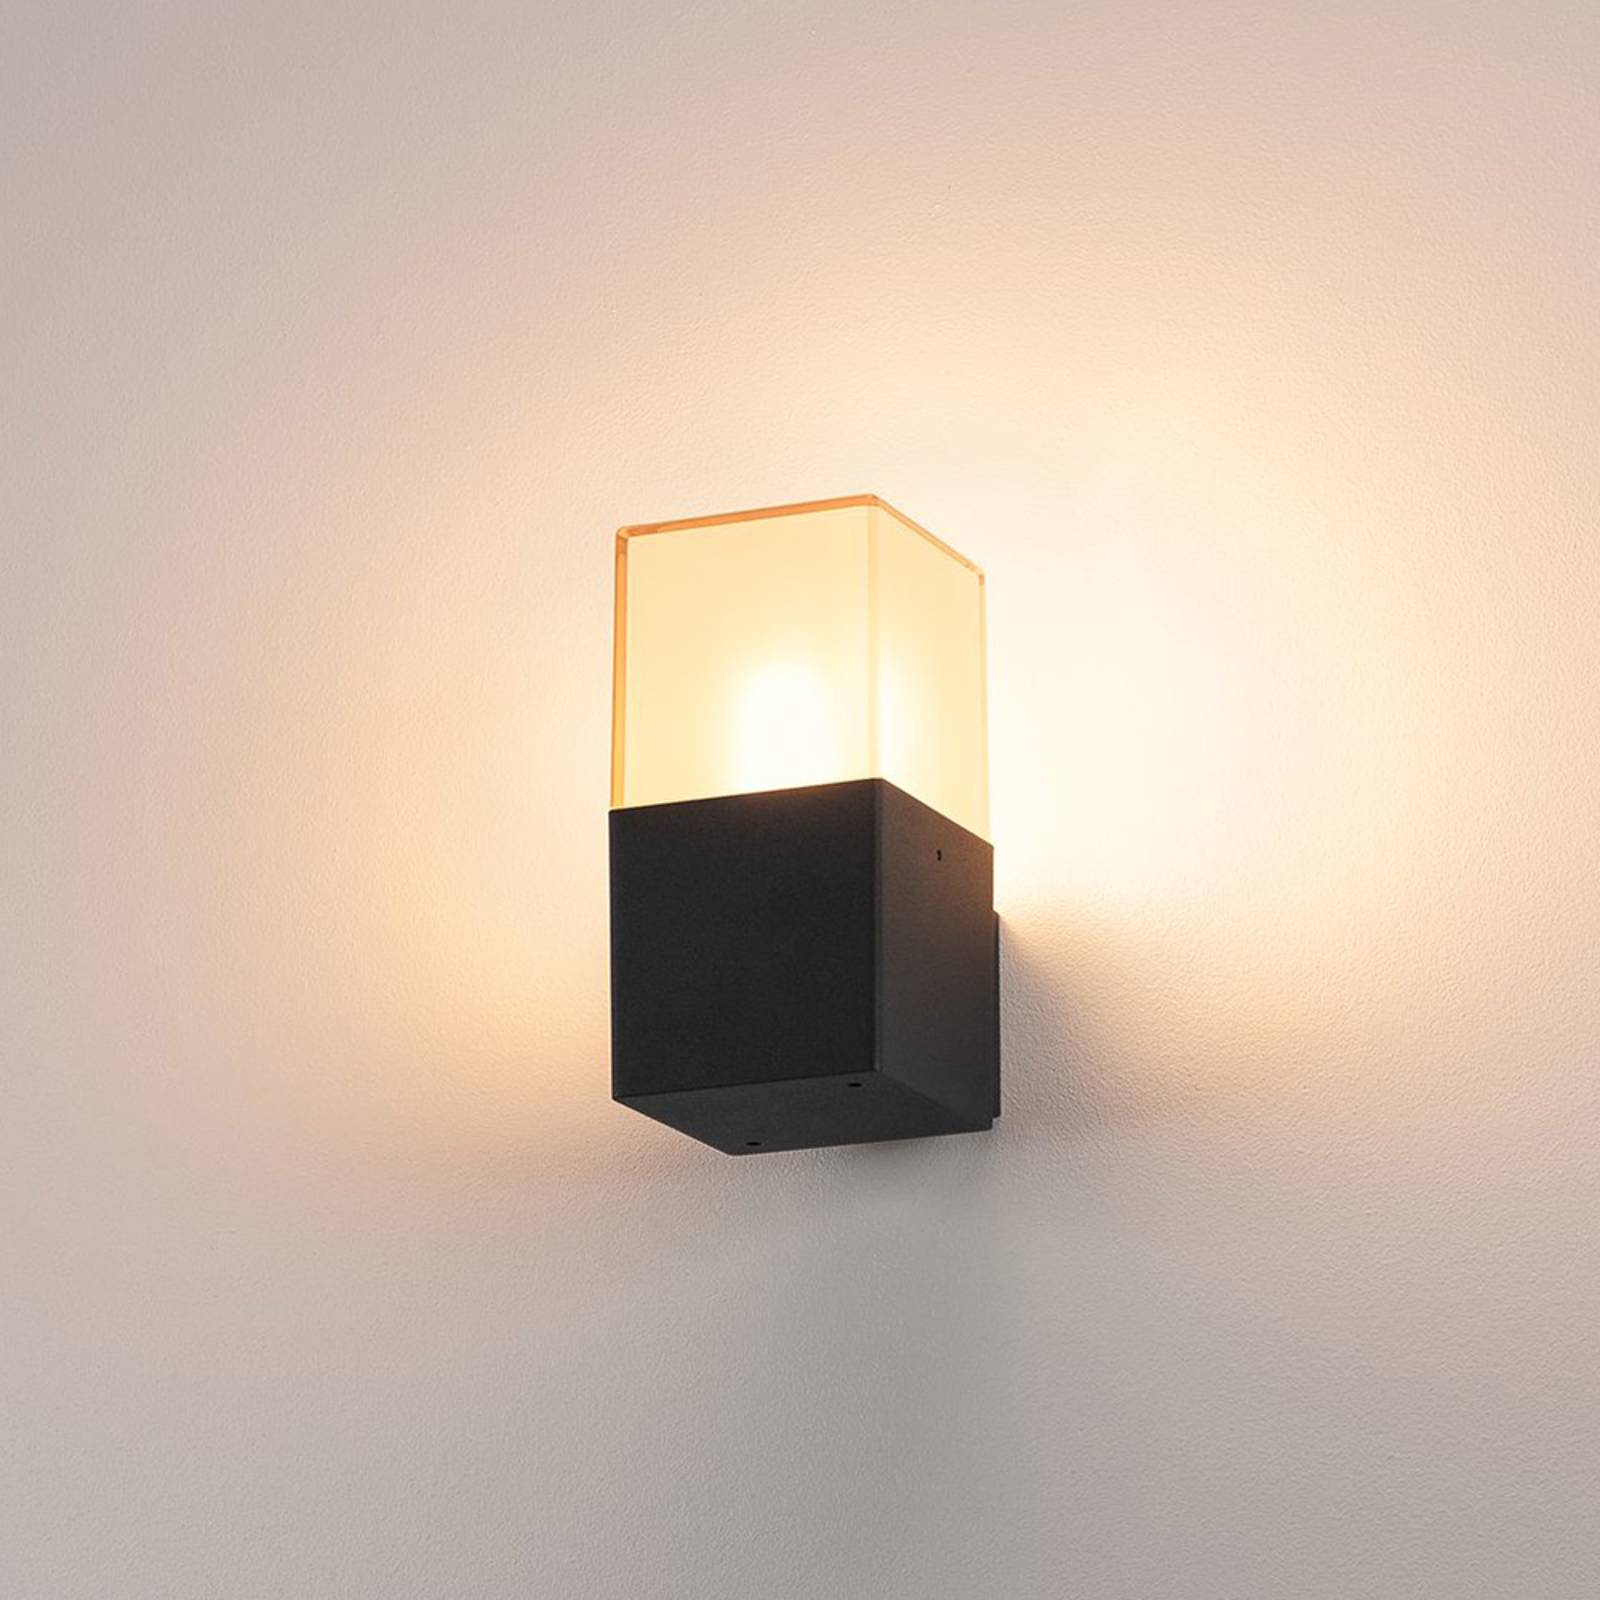 GRAFIT Square Exterior Wall Lamp from SLV